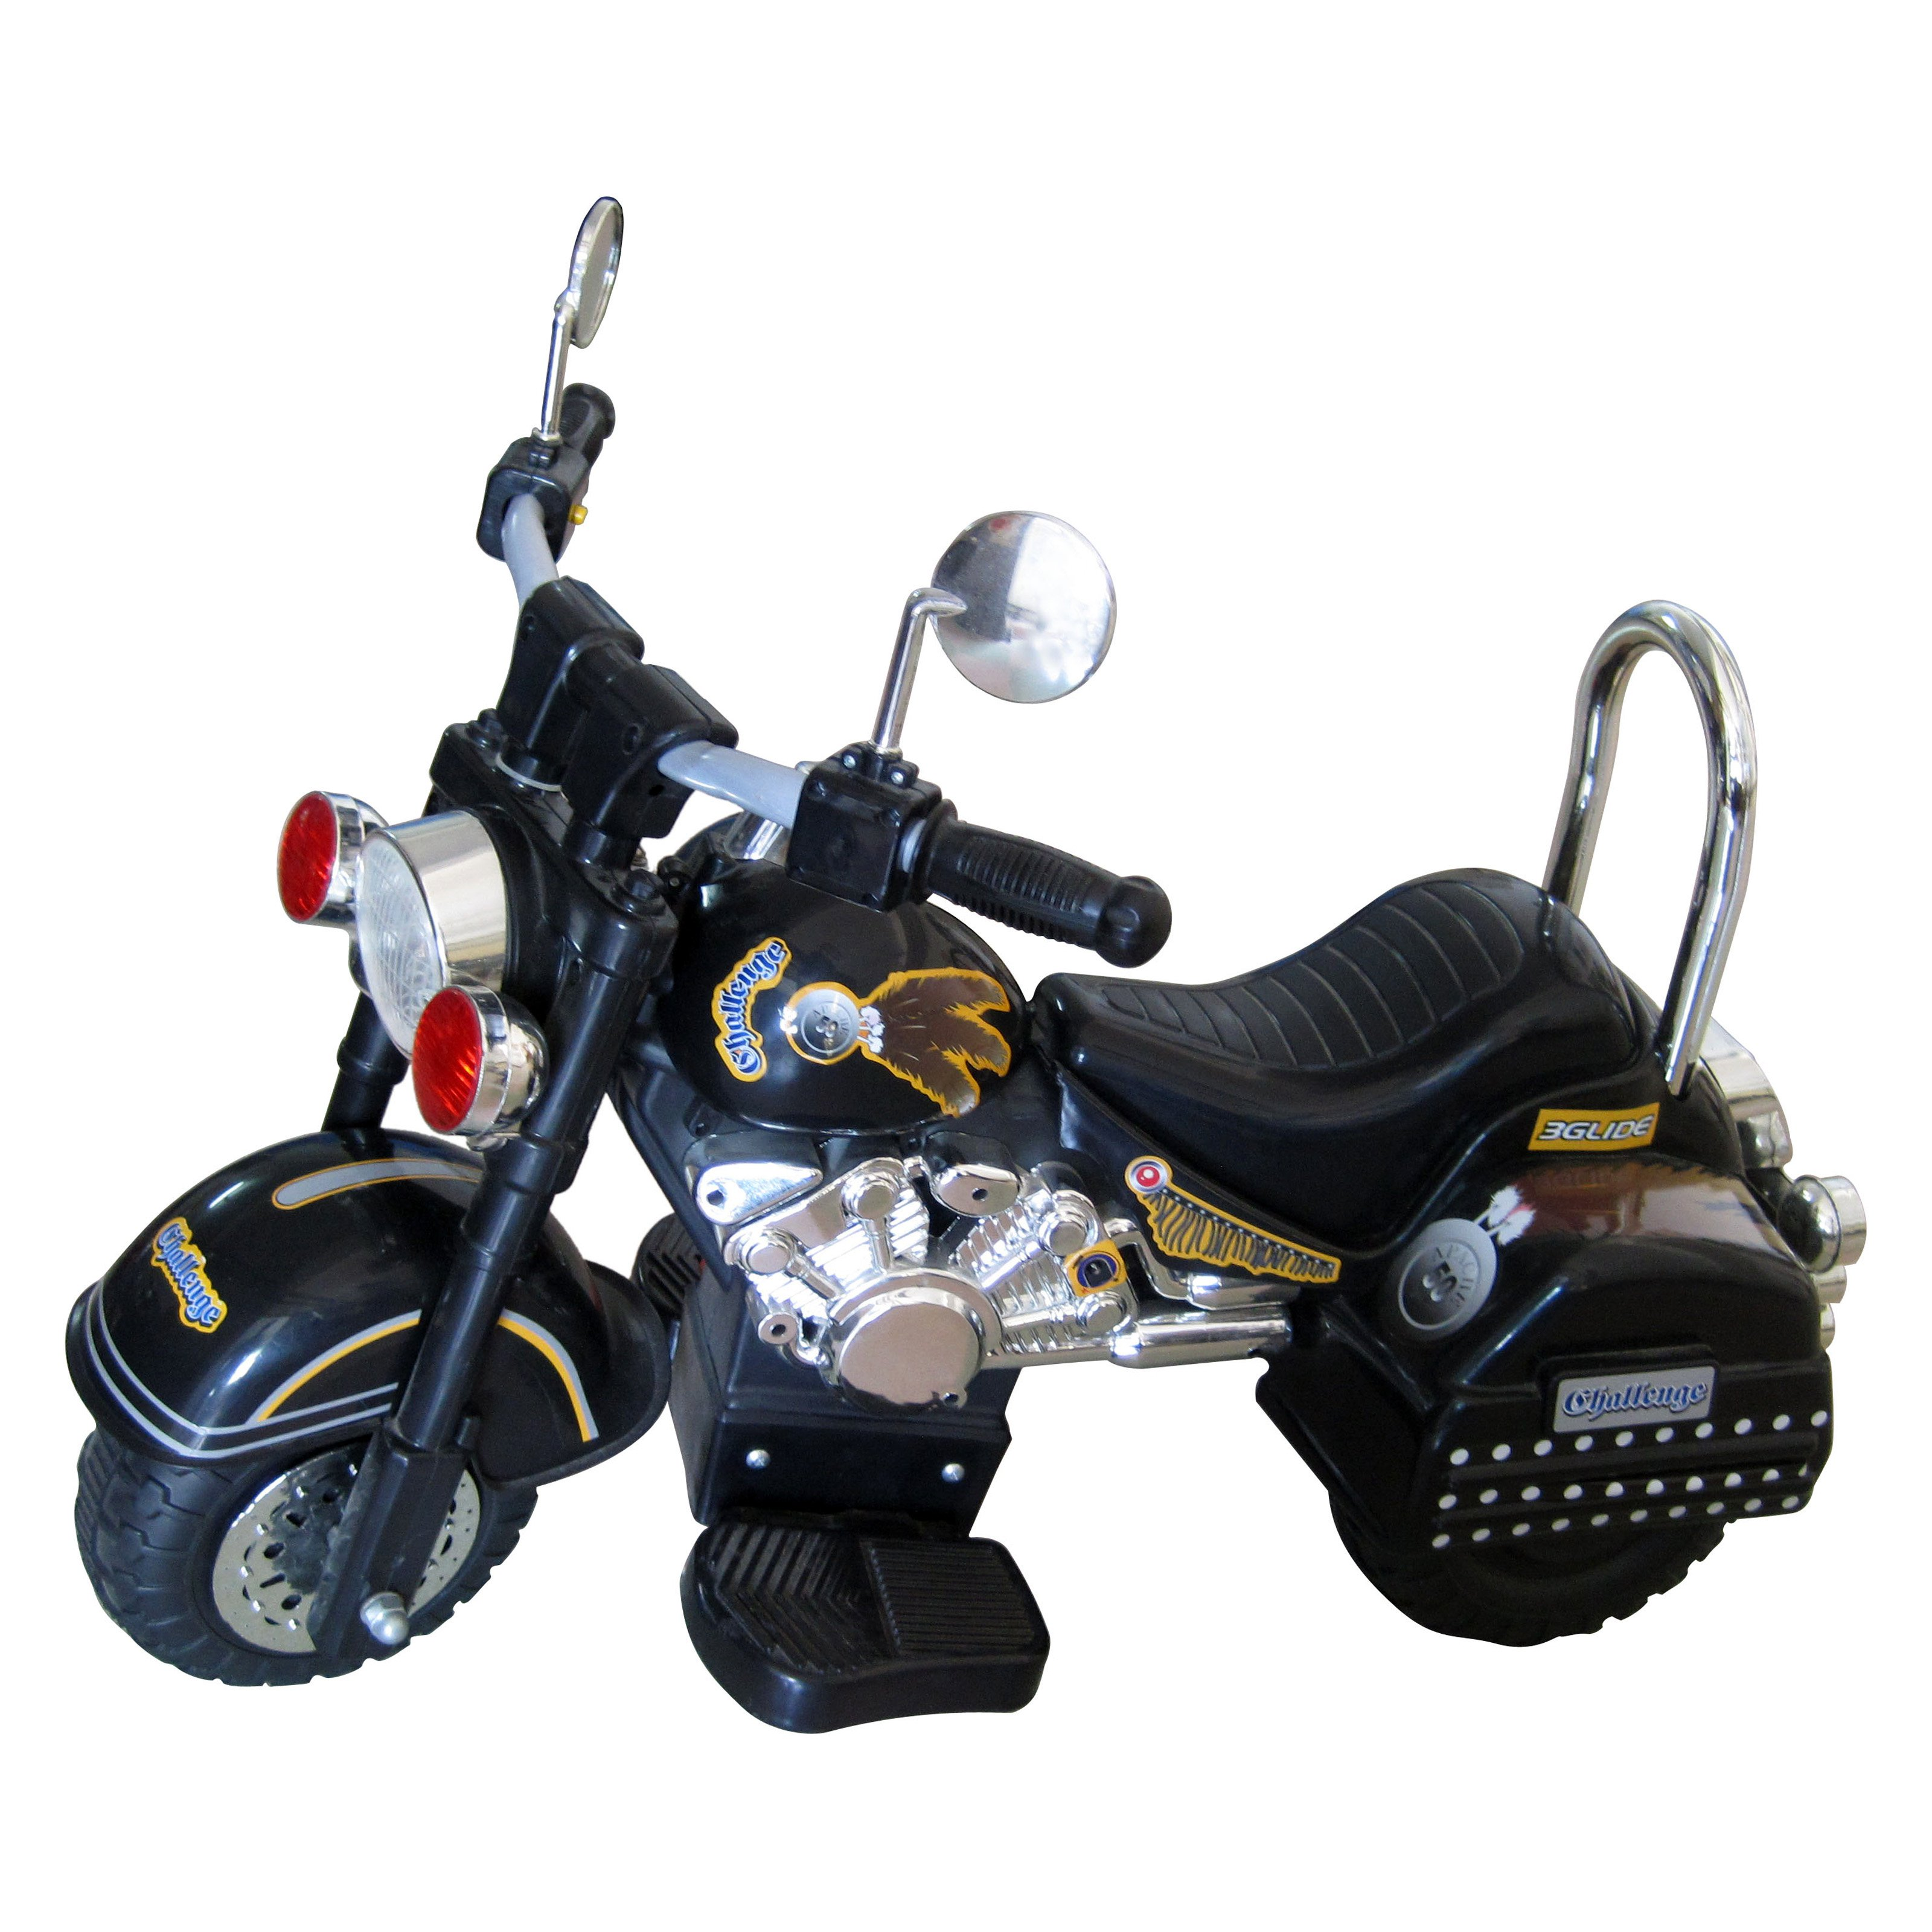 Merske Harley Style Motorcycle Battery Powered Riding Toy Black by Overstock